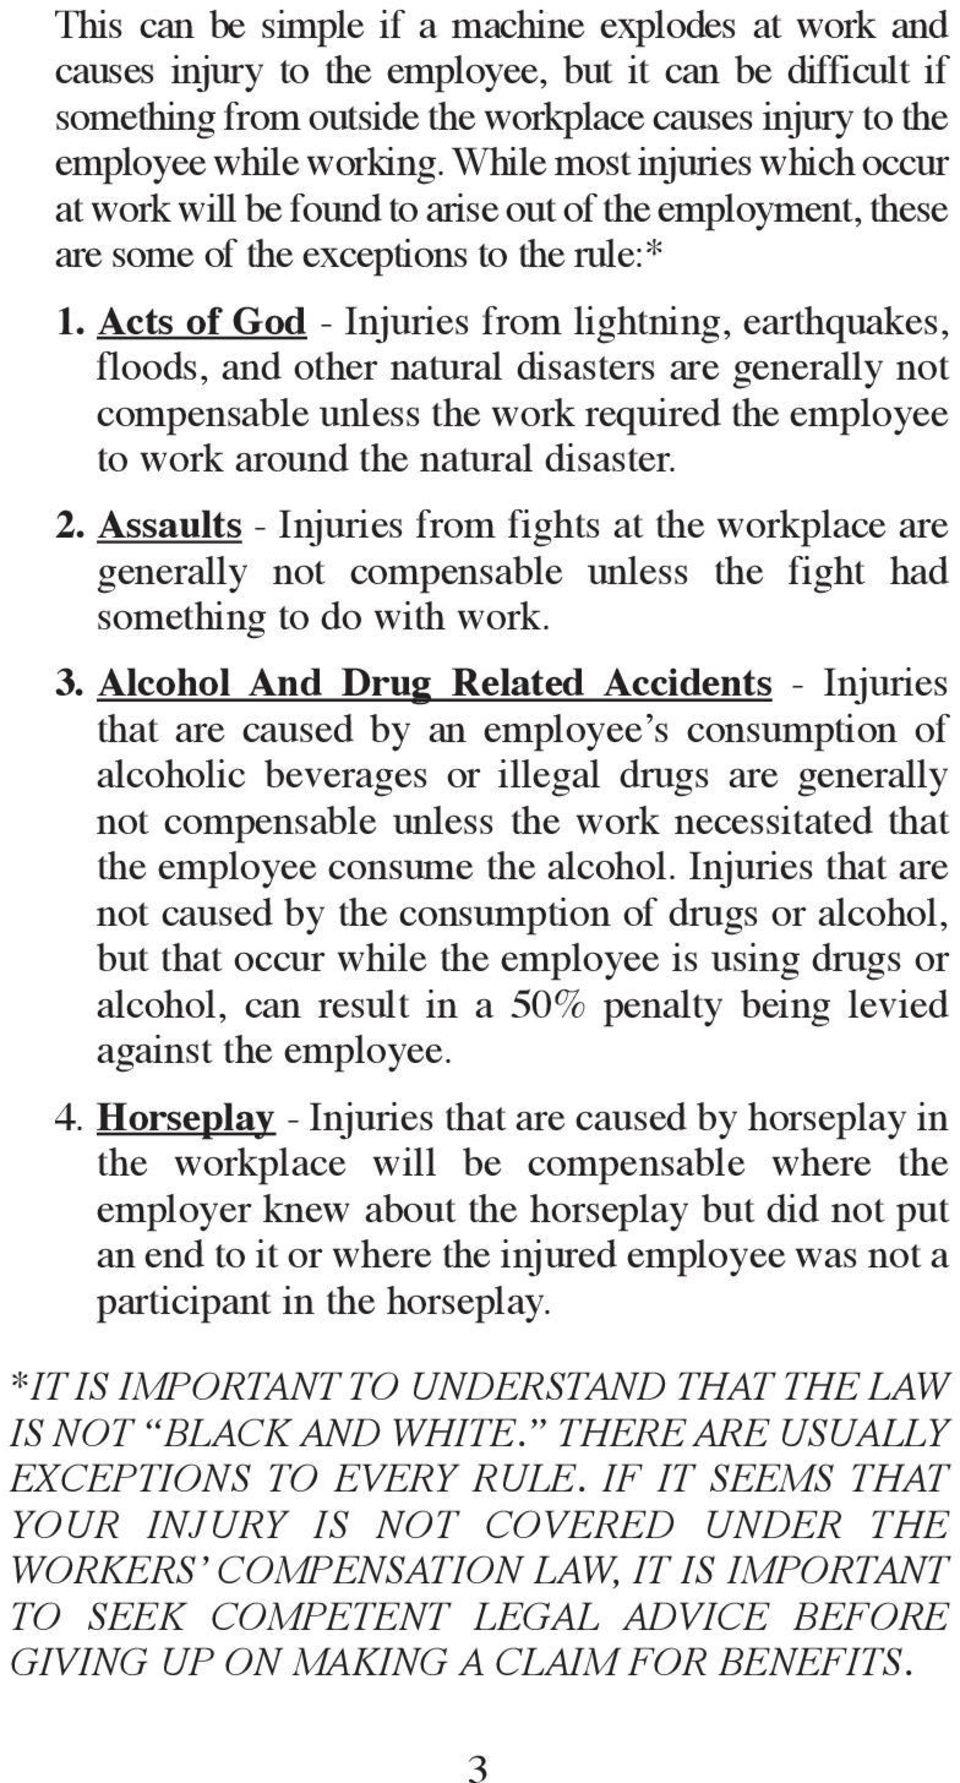 Acts of God - Injuries from lightning, earthquakes, floods, and other natural disasters are generally not compensable unless the work required the employee to work around the natural disaster. 2.